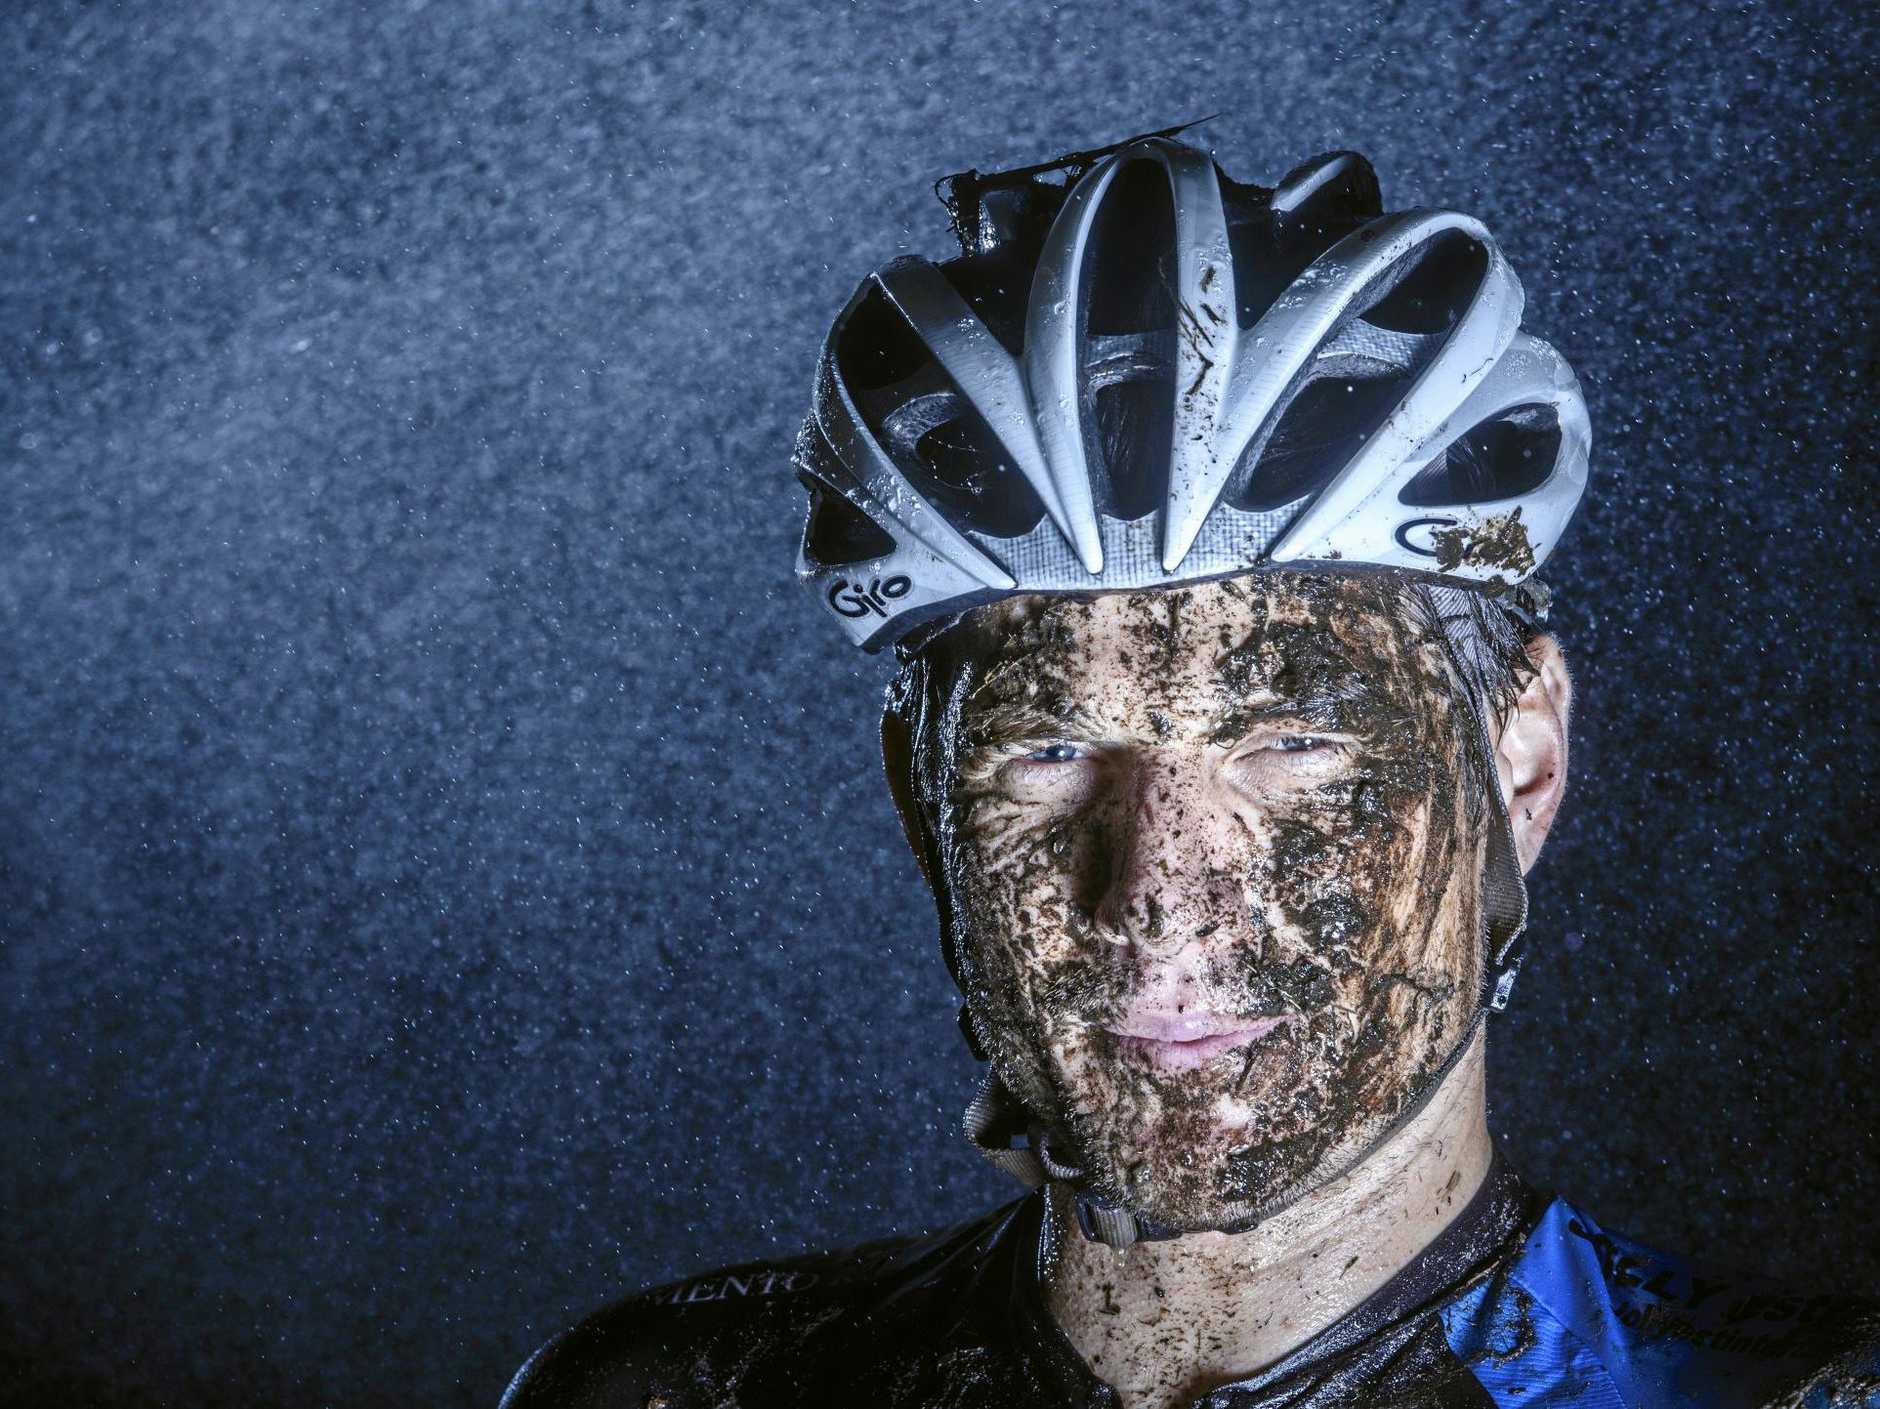 International endurance mountain-bike rider Morgan Pilley is used to pushing through the elements, but this weekend he'll push on to raise money for local mental health services in a charity ride at Junction Hill.